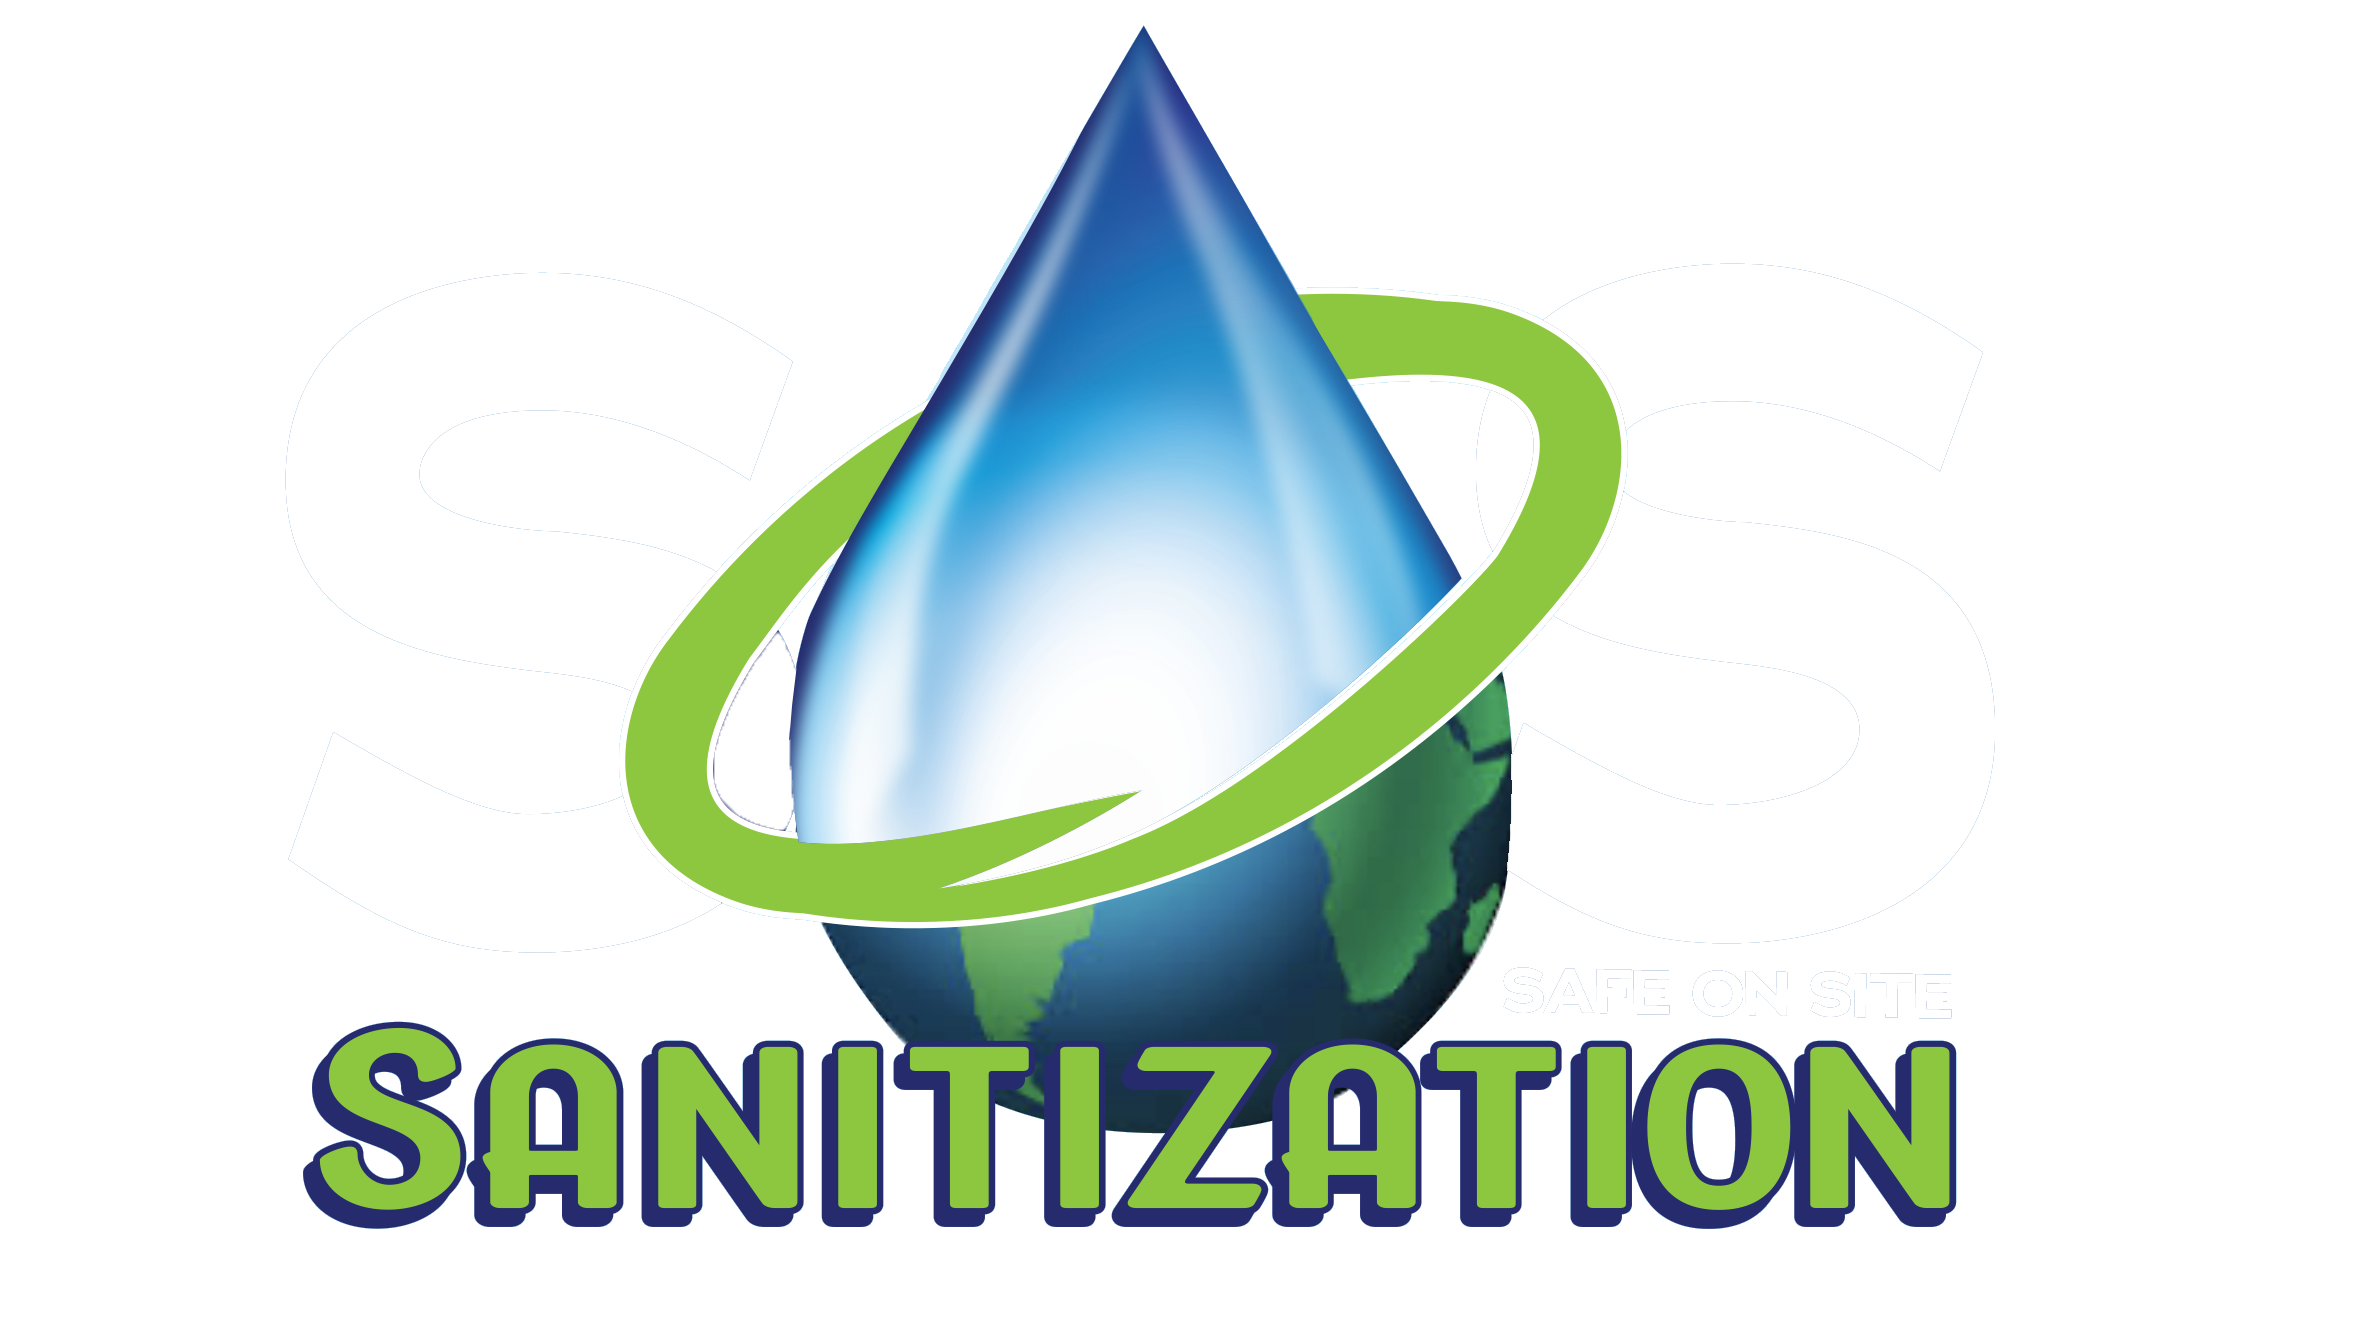 Safe On-Site Sanitization